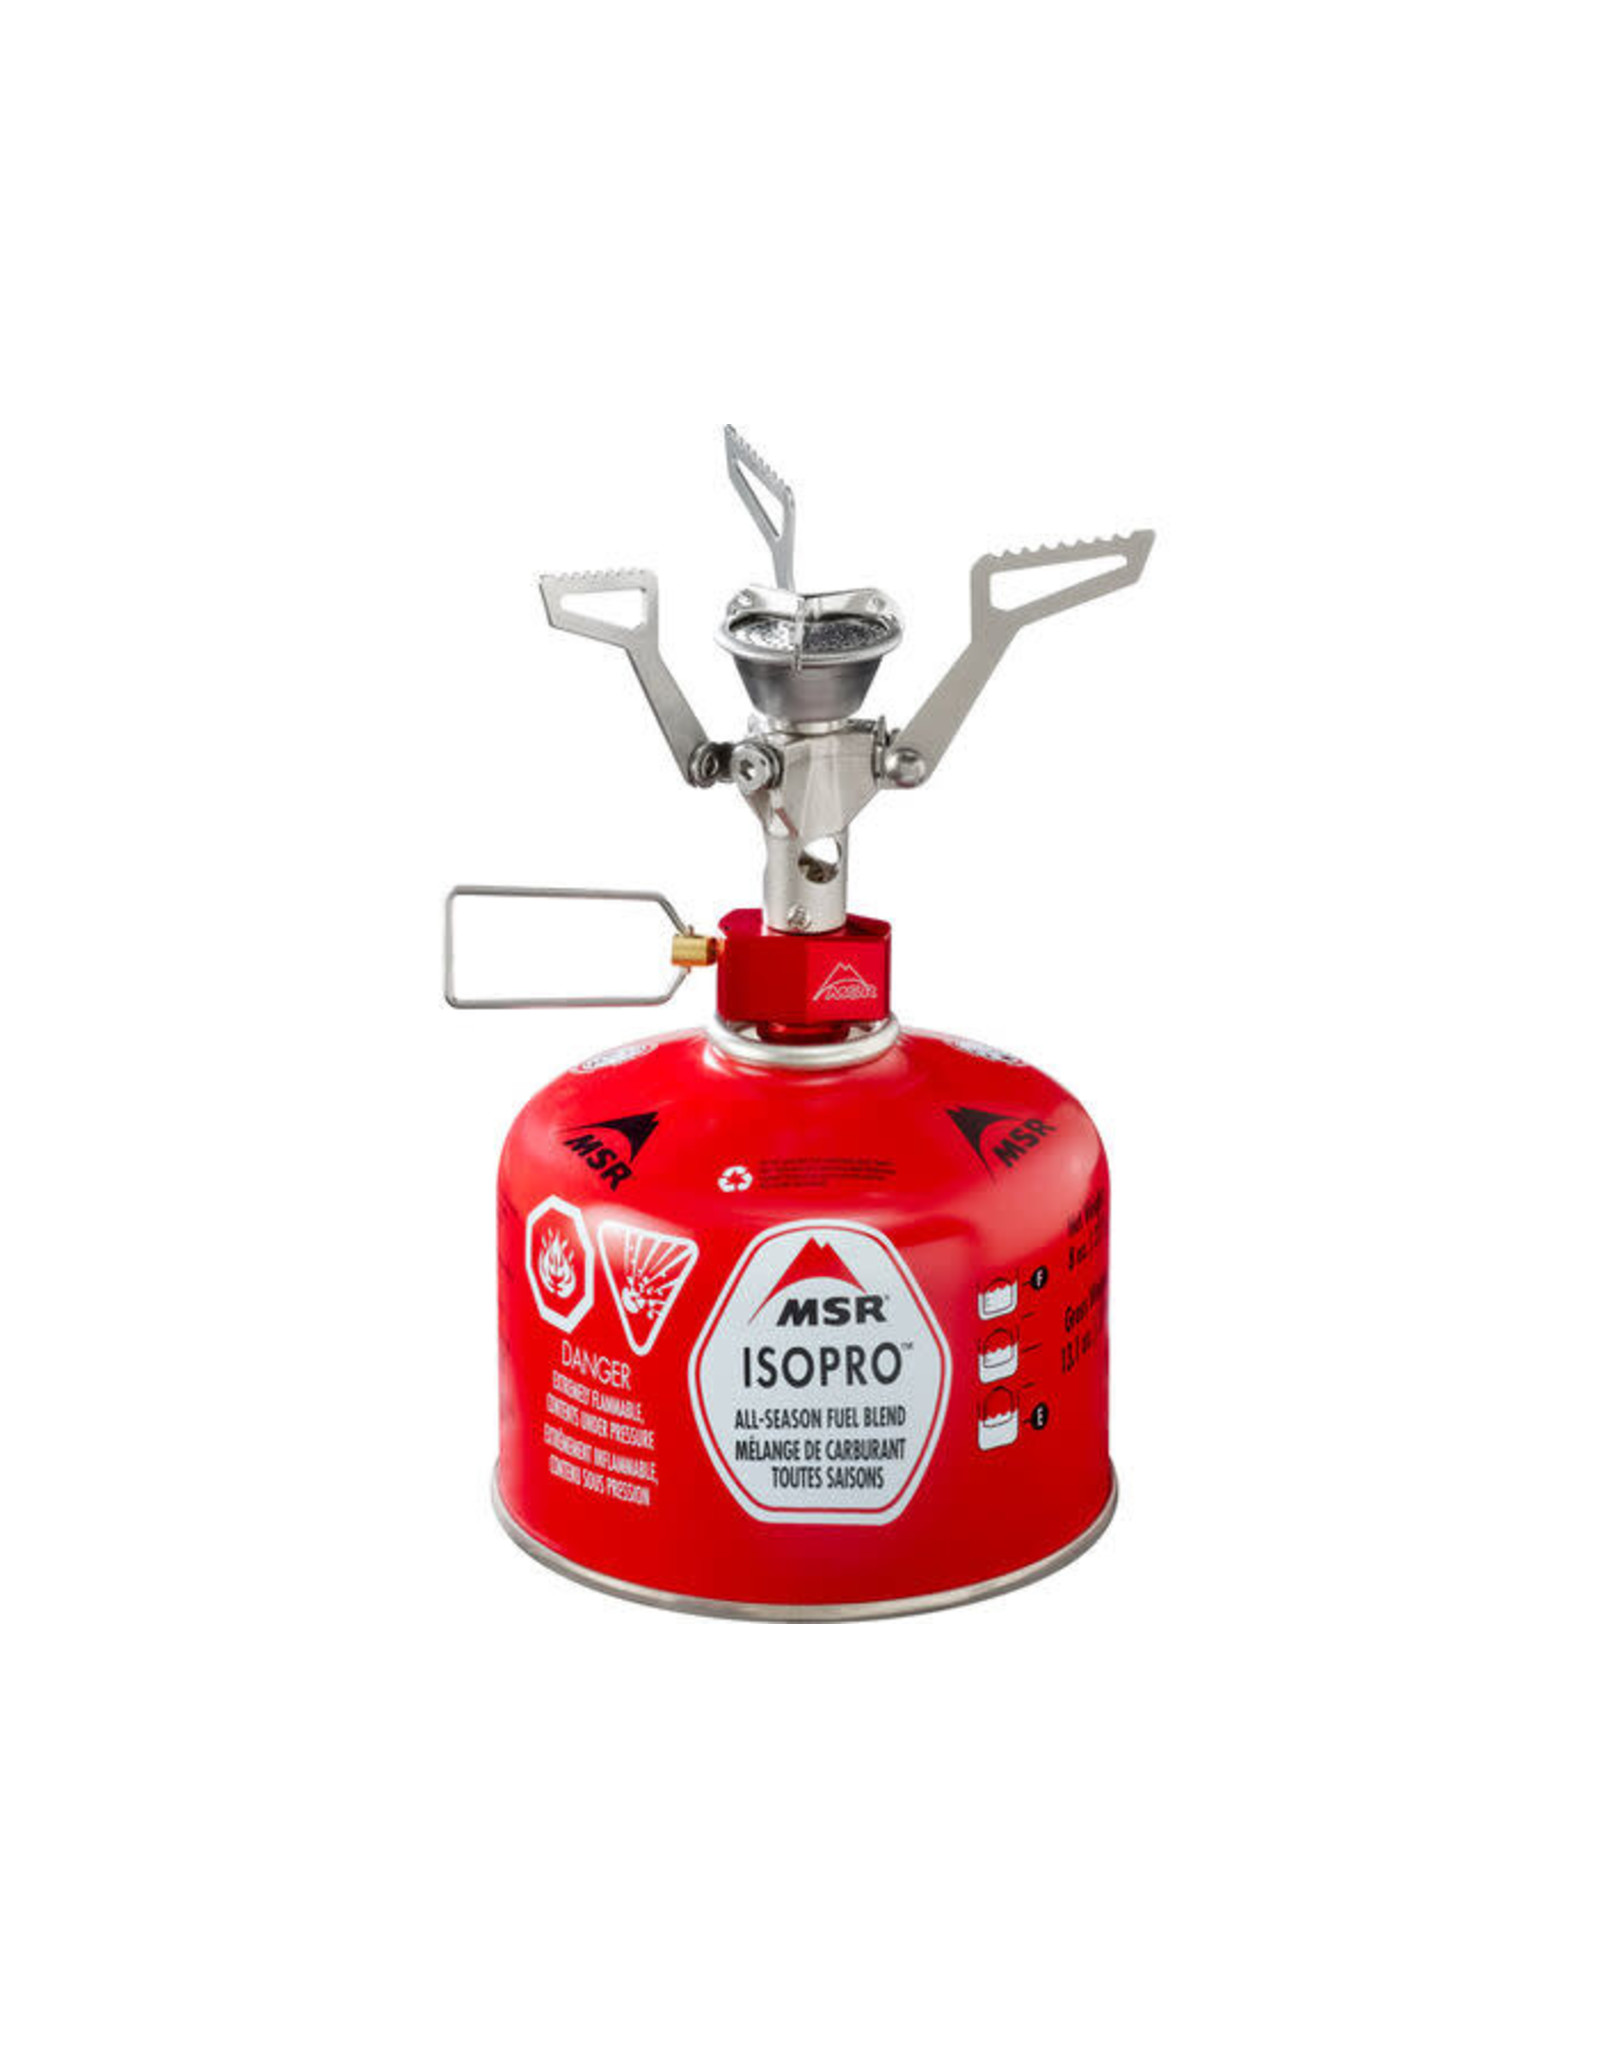 MSR POCKET ROCKET 2 CAMP STOVE #09884